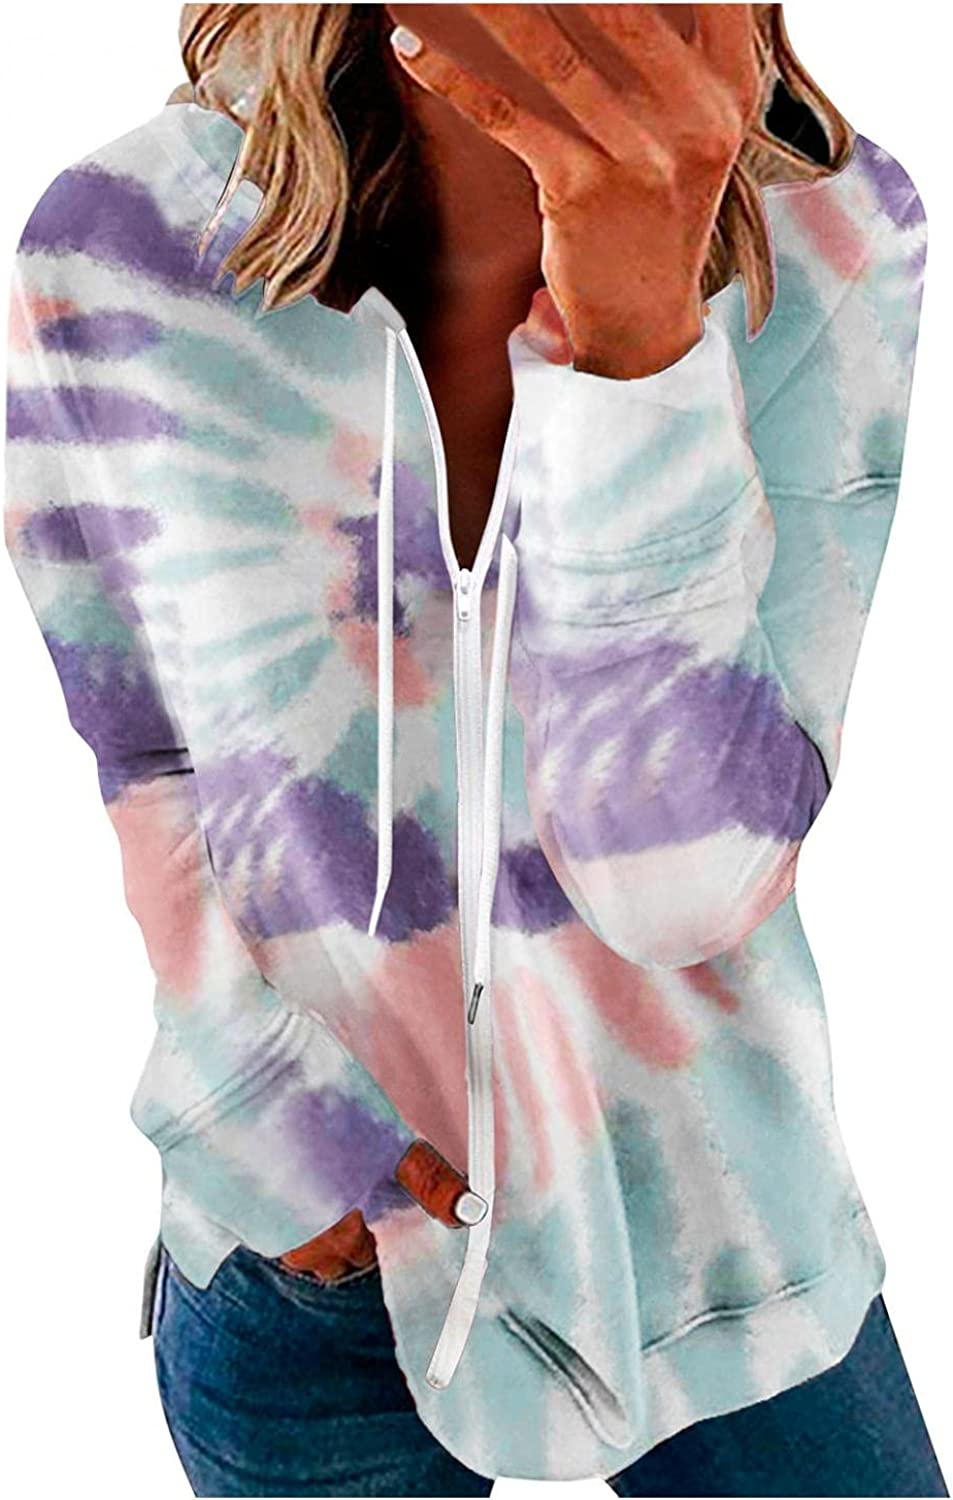 Jeepuch Hoodies for Women Long Sleeve Tie Dyed Zip Up Sweatshirt Loose Pullover Tops Activewear Jacket with Pocket